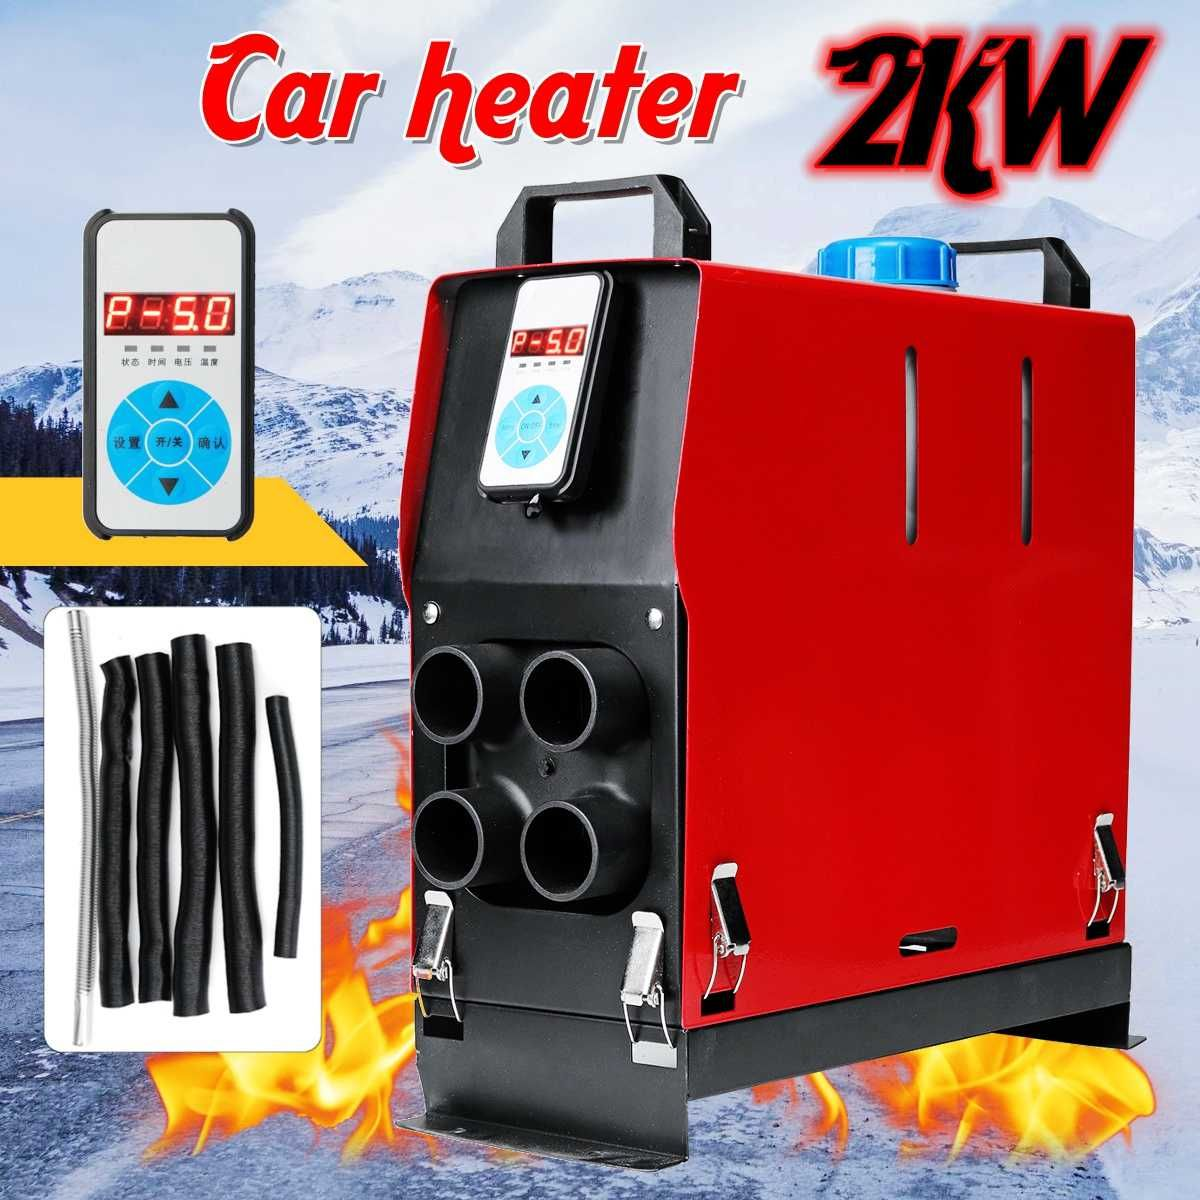 2KW 12V Integration 4 Holes Air Diesels air parking heater 2000W Digital switch Car Heater All In One Saving Space